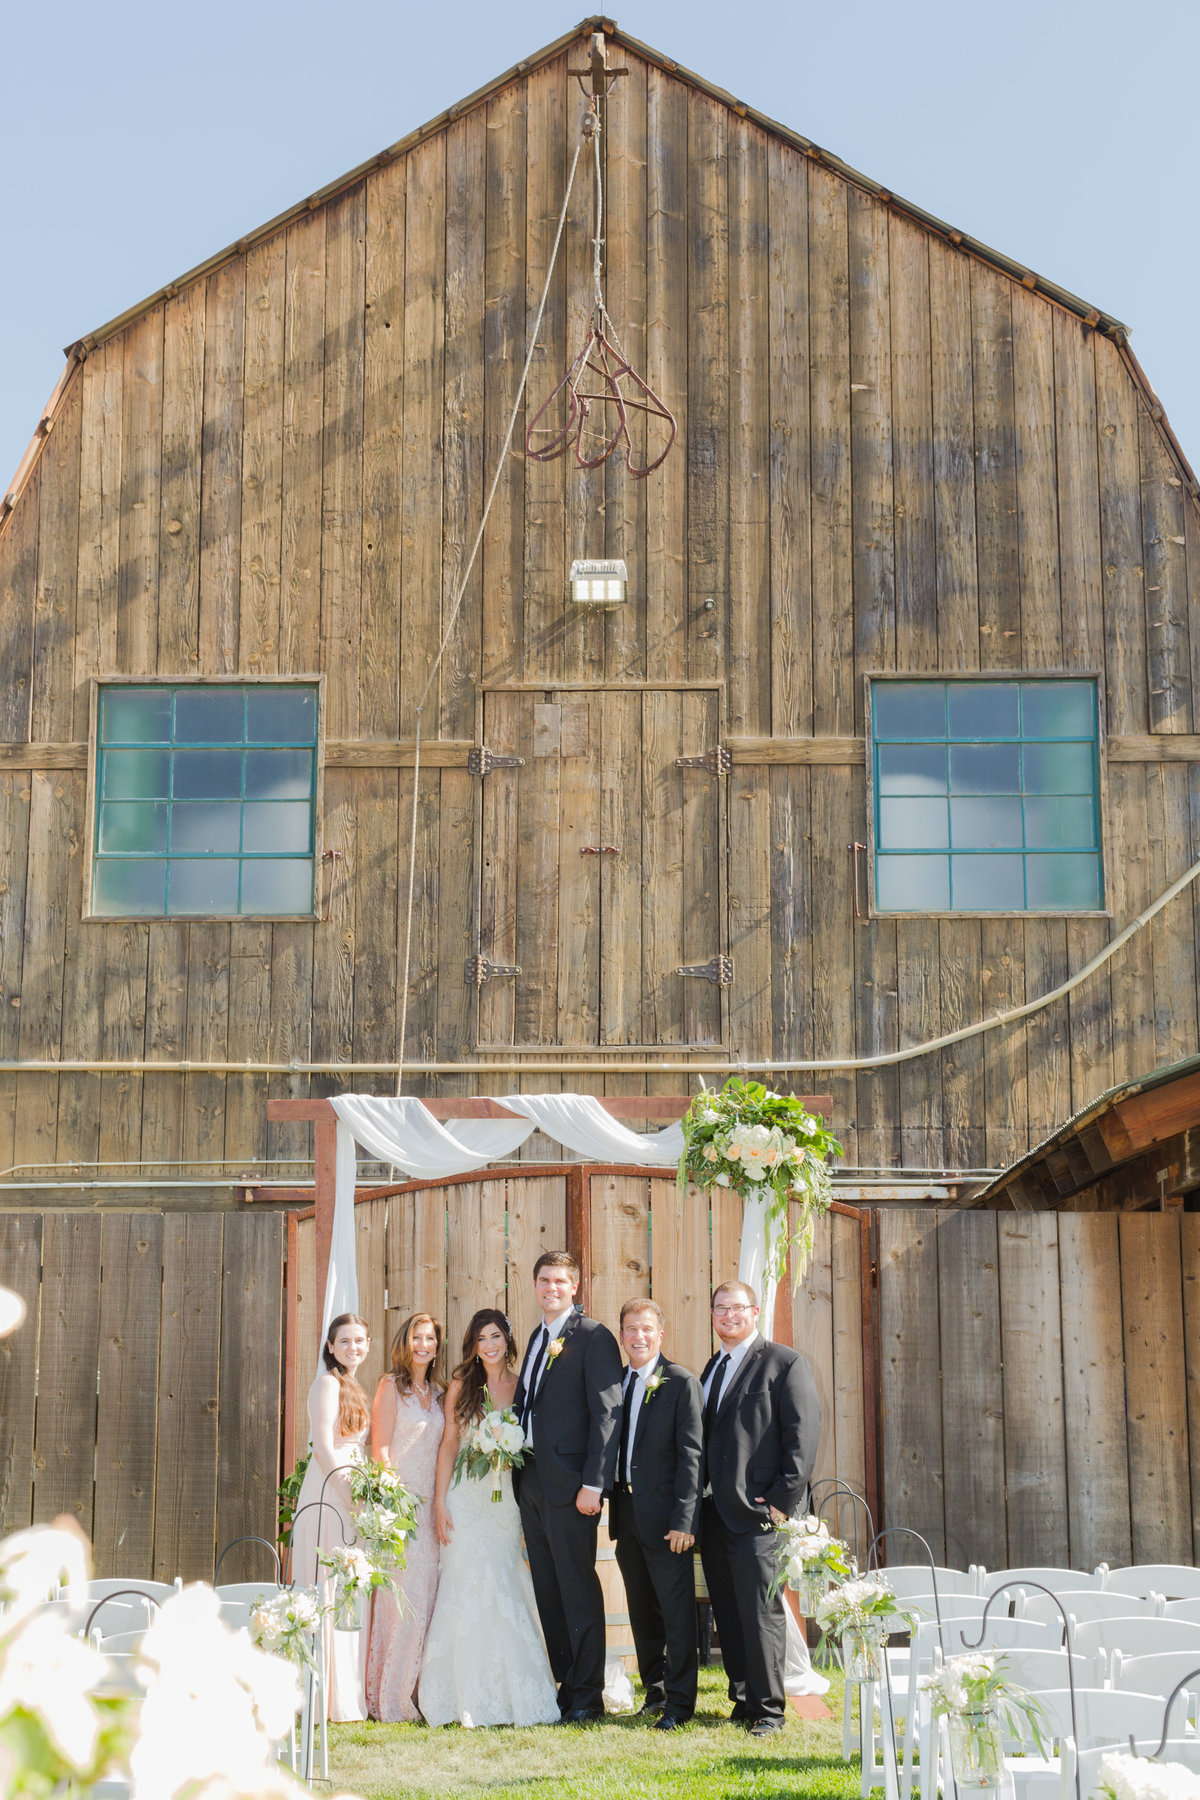 Erica Mendenhall Photography_Barn Wedding_MP_6878web